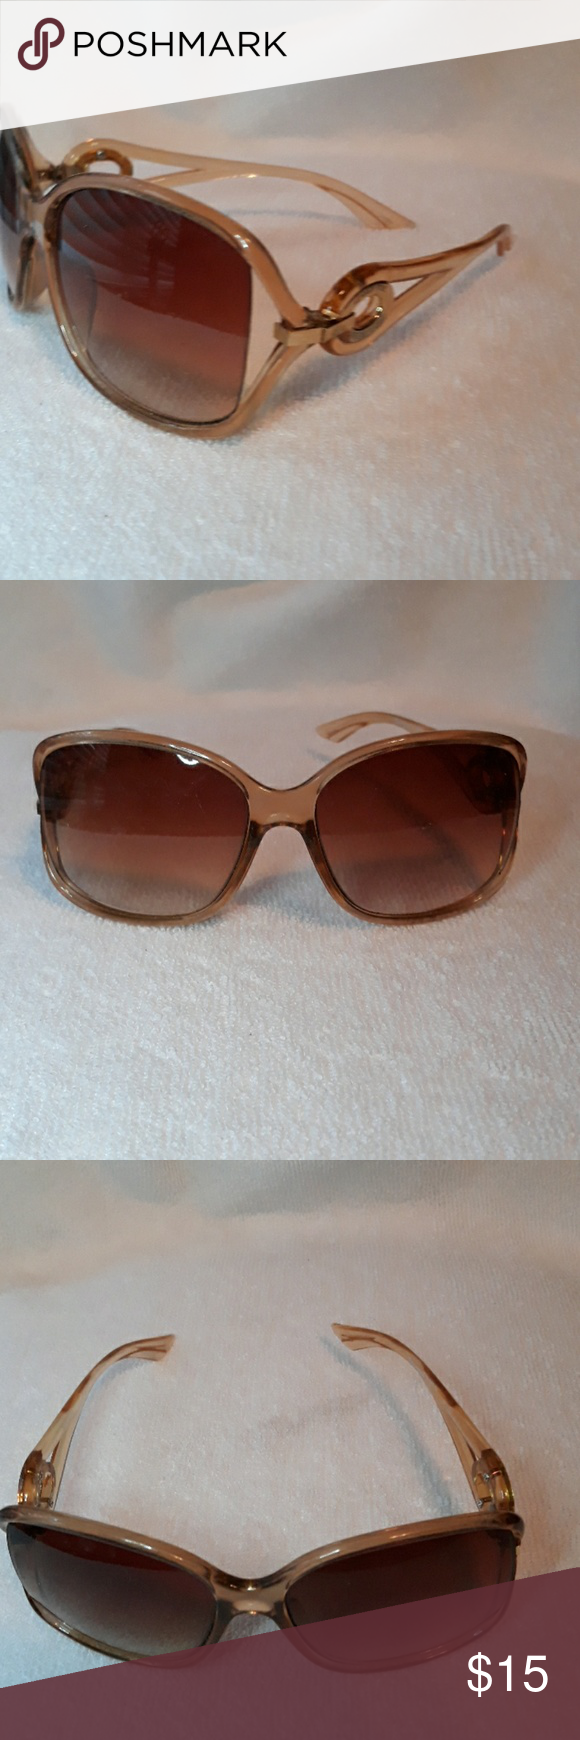 Brand new Cole Reaction shades sunglasses